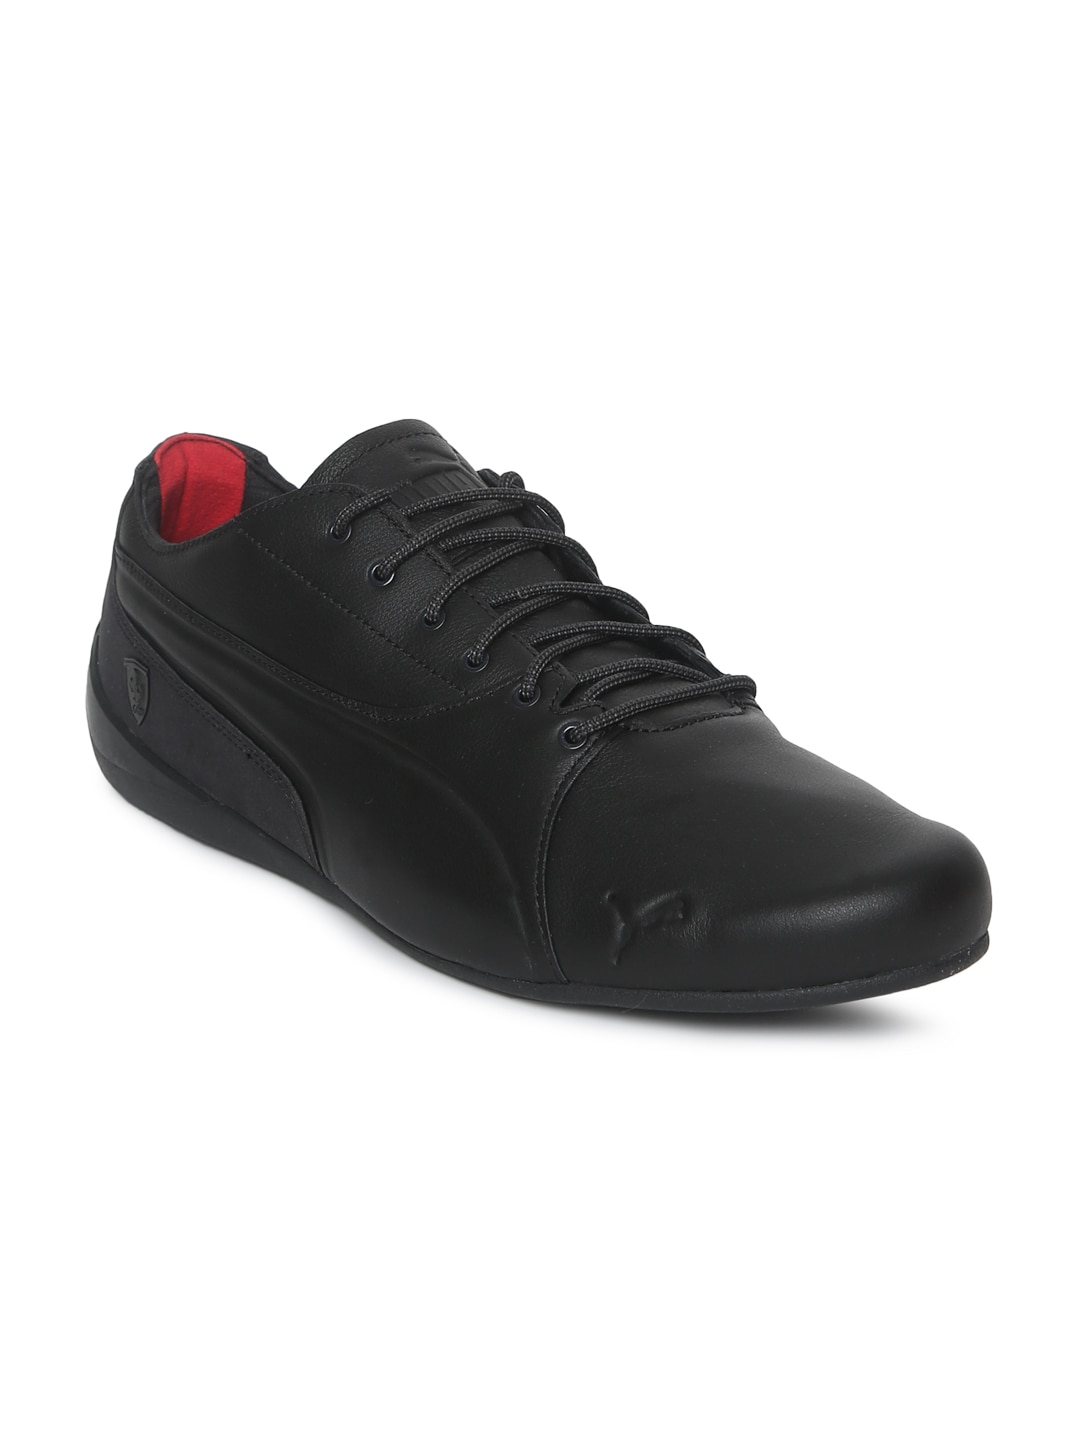 Puma Men Black Leather - Buy Puma Men Black Leather online in India 9ea157163